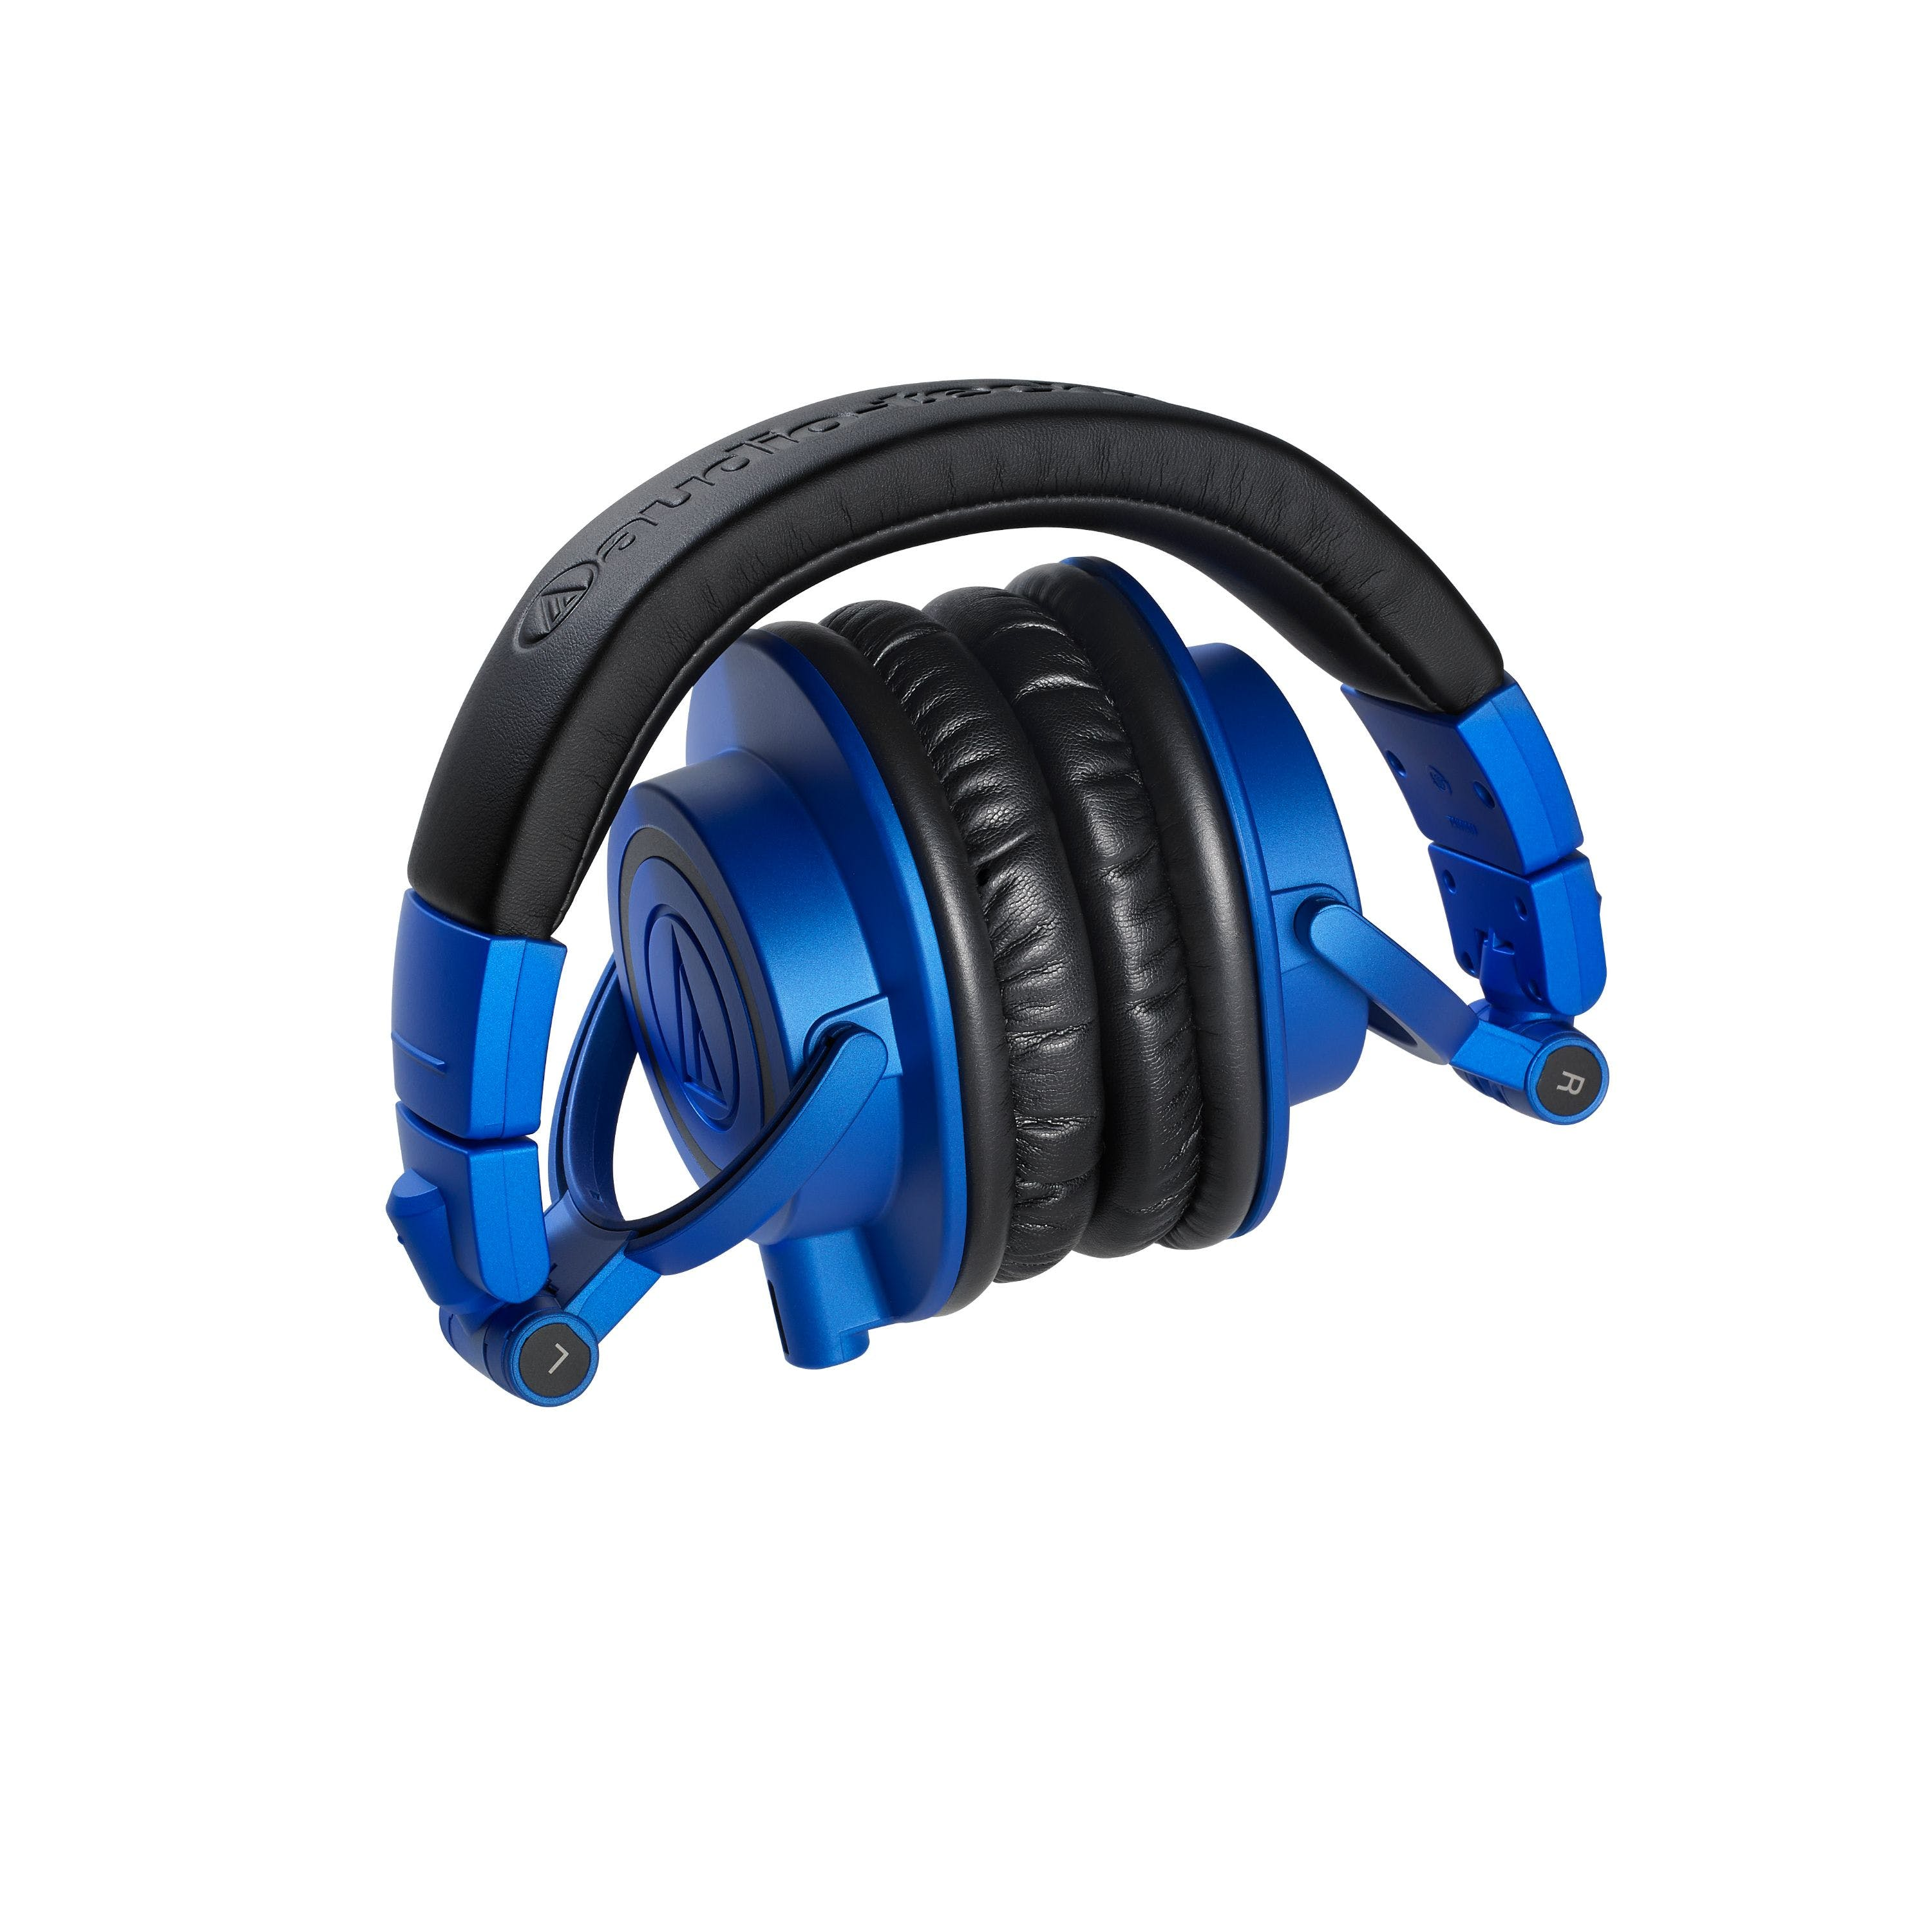 ba86afceb3e Audio-Technica ATH-M50X Pro Monitor Headphones in Limited Edition Blue    Black - Andertons Music Co.